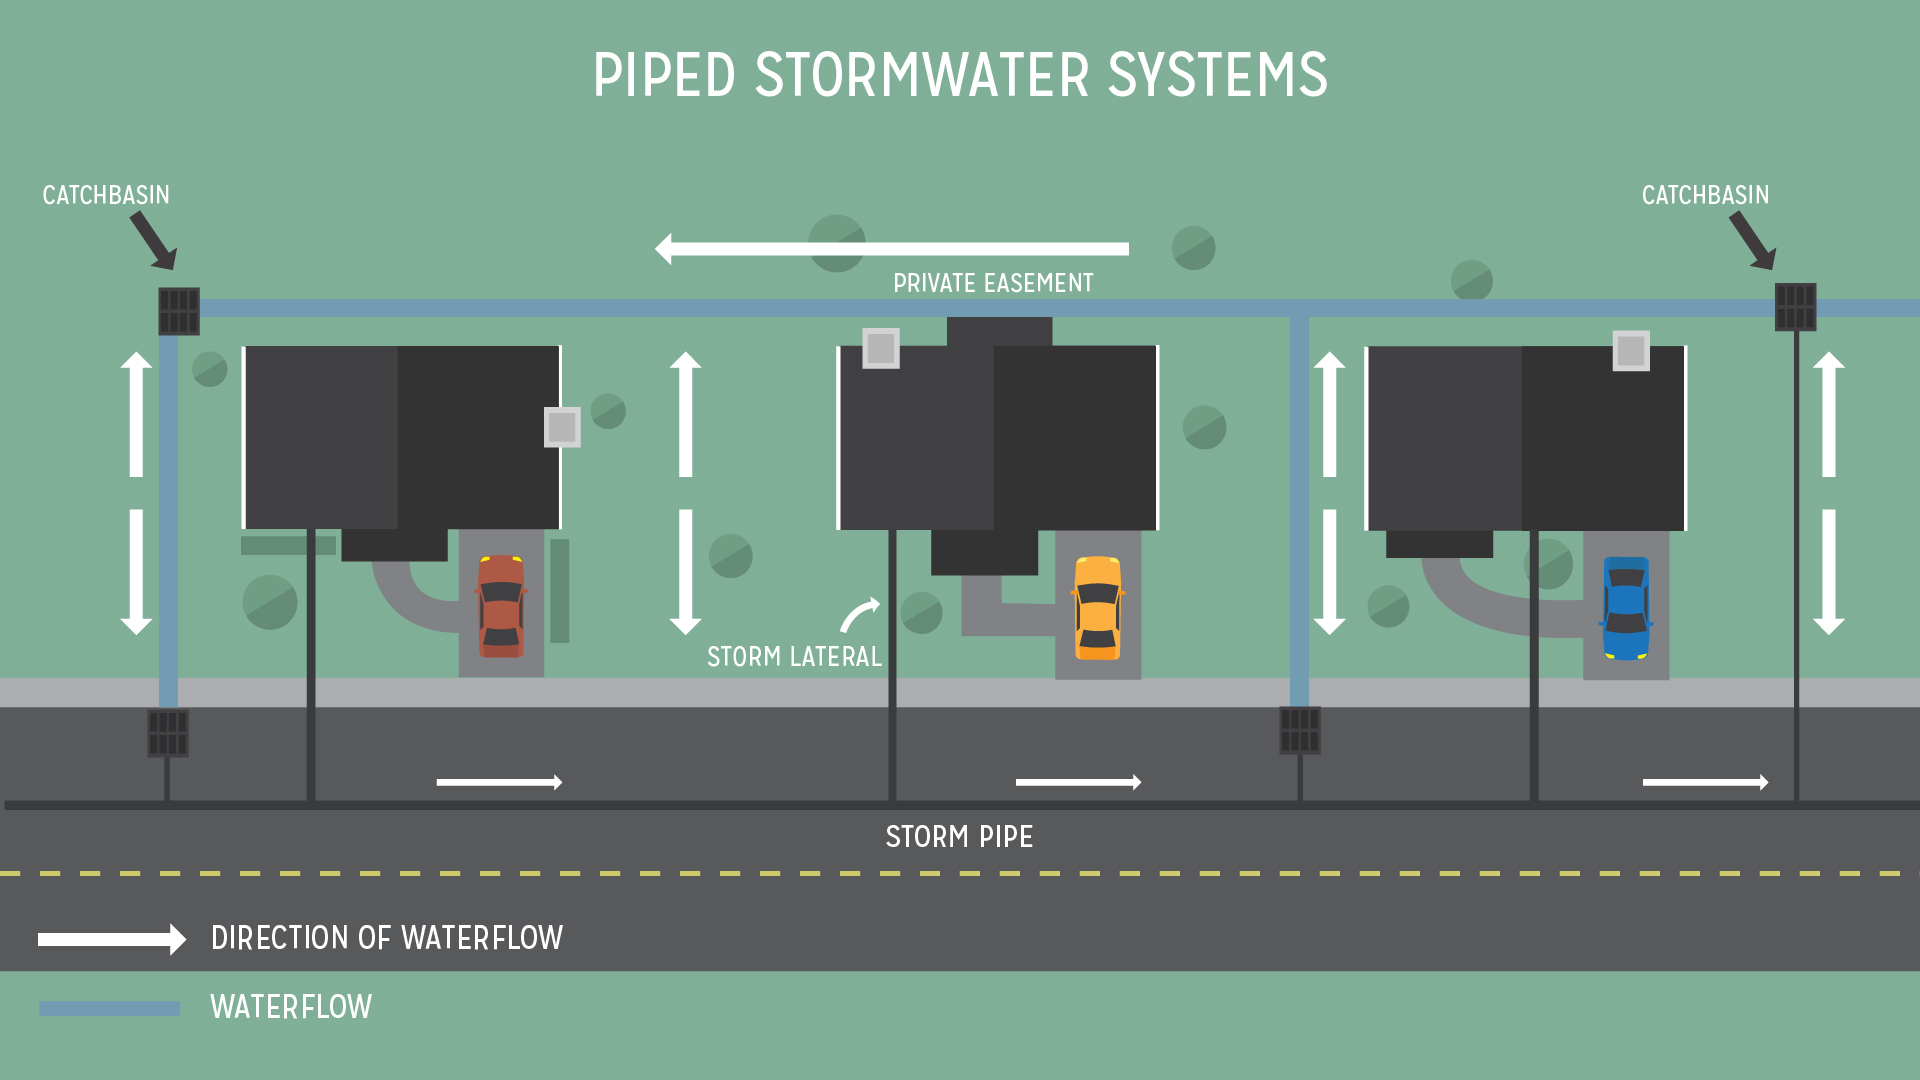 Image showing piped stormwater systems infrastructure